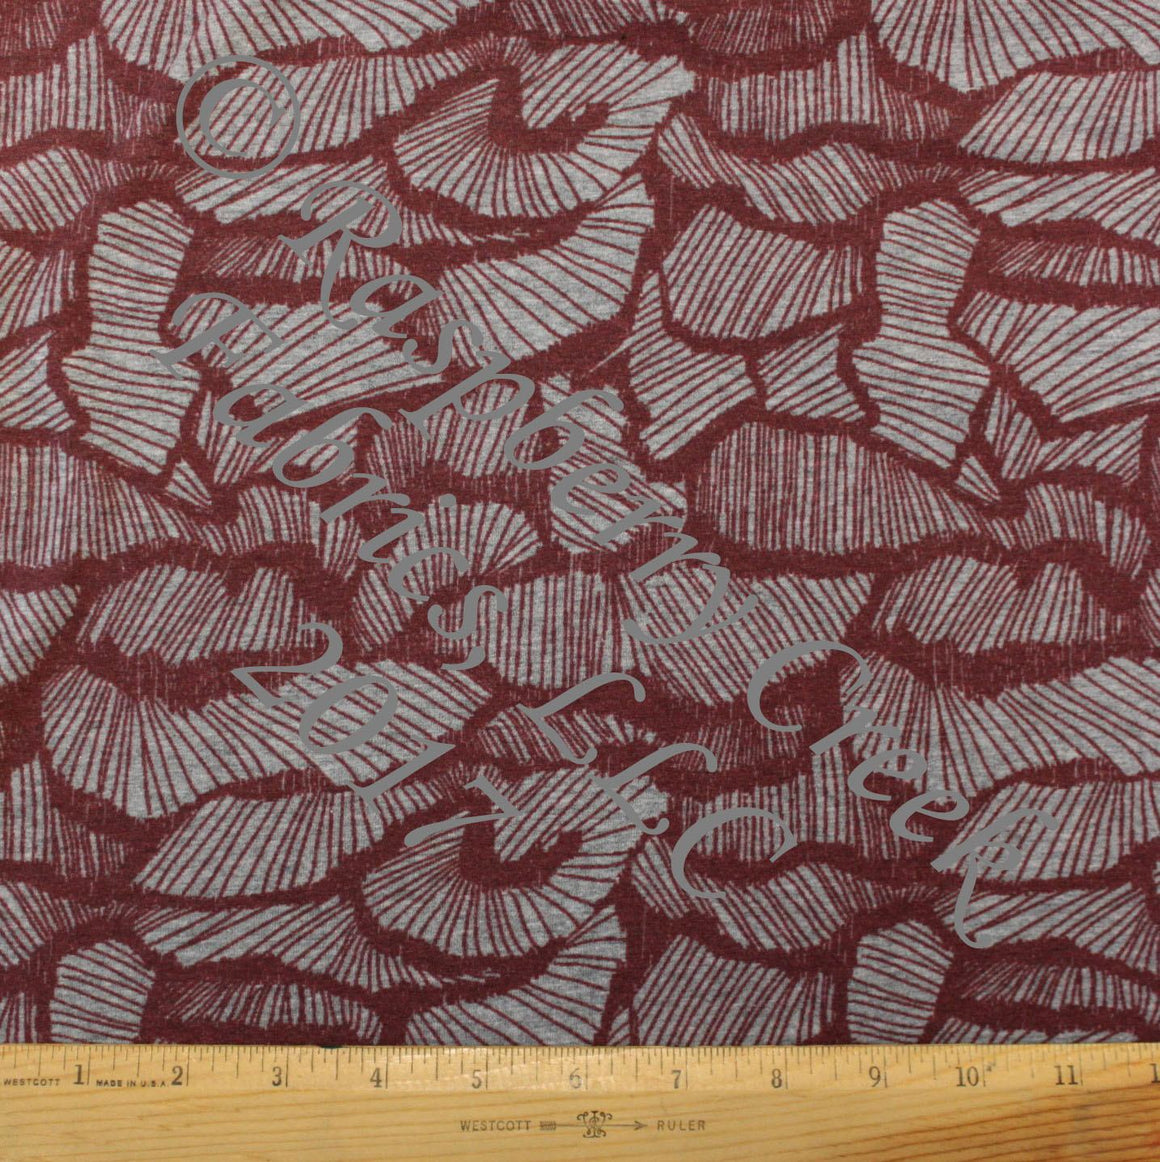 Burgundy and Heathered Grey Geometric Abstract Rock Print 4 Way Stretch Jersey Knit Fabric, For The Boys for Club Fabrics